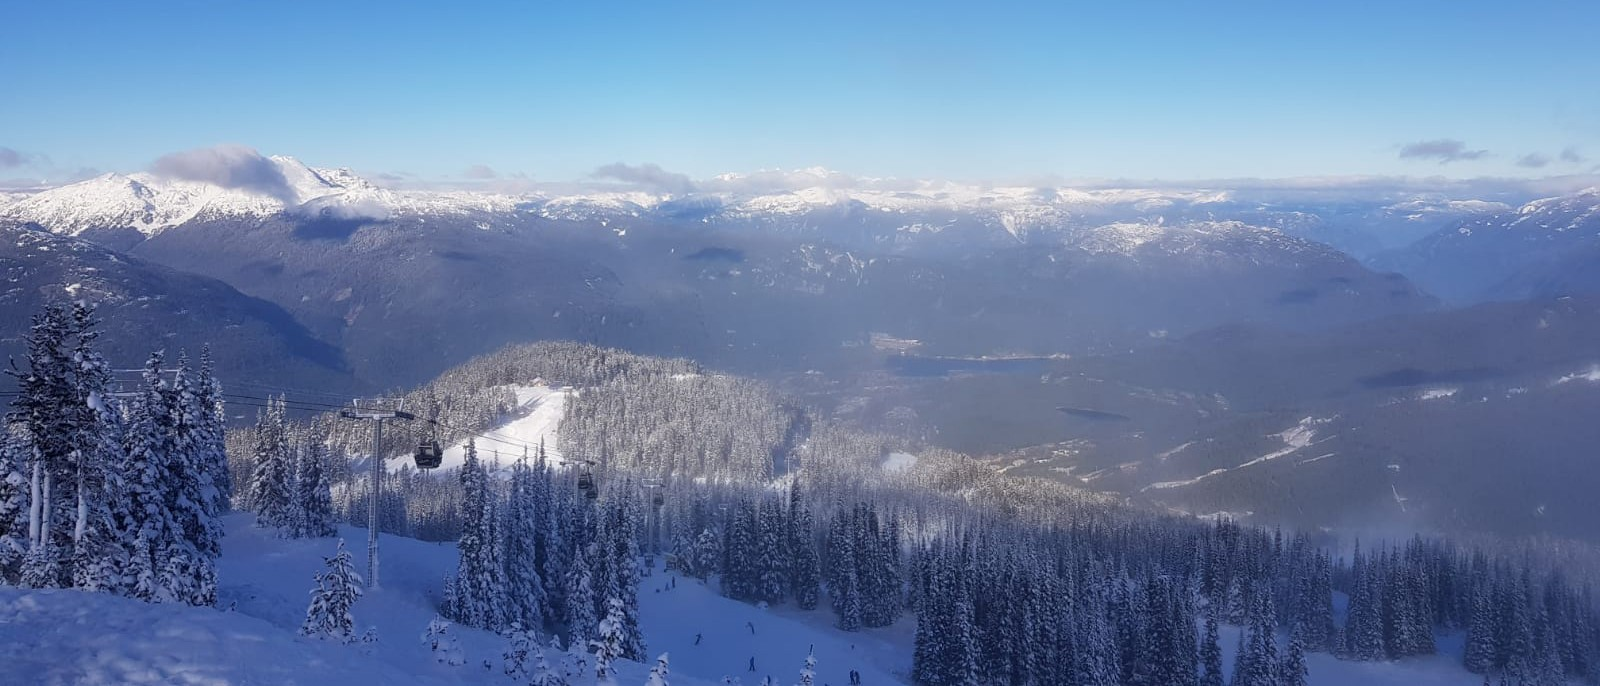 Whistler Early December 2018